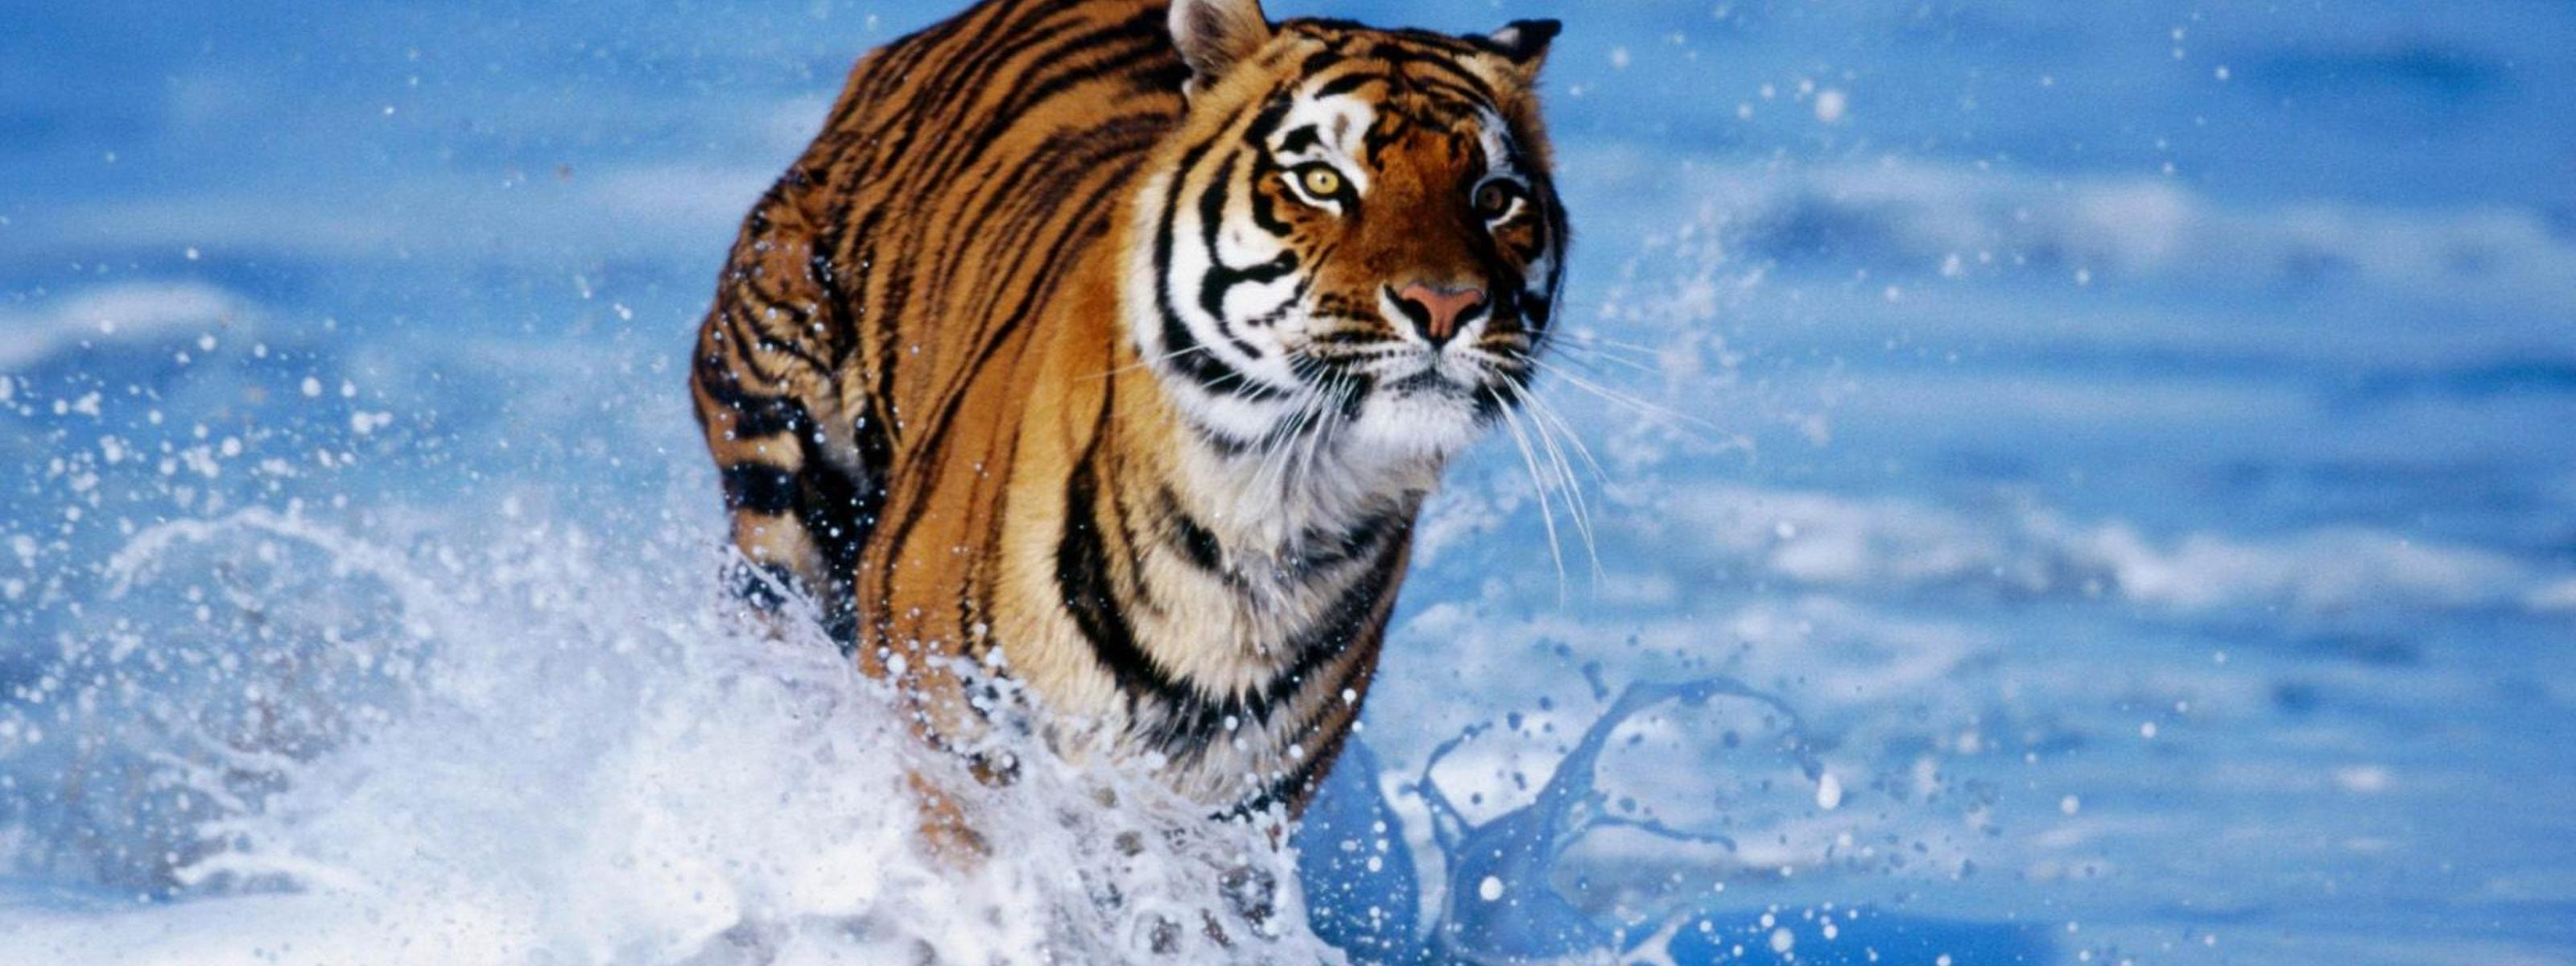 Wild Tiger Running In The Fresh Water Wallpaper Download 3200x1200